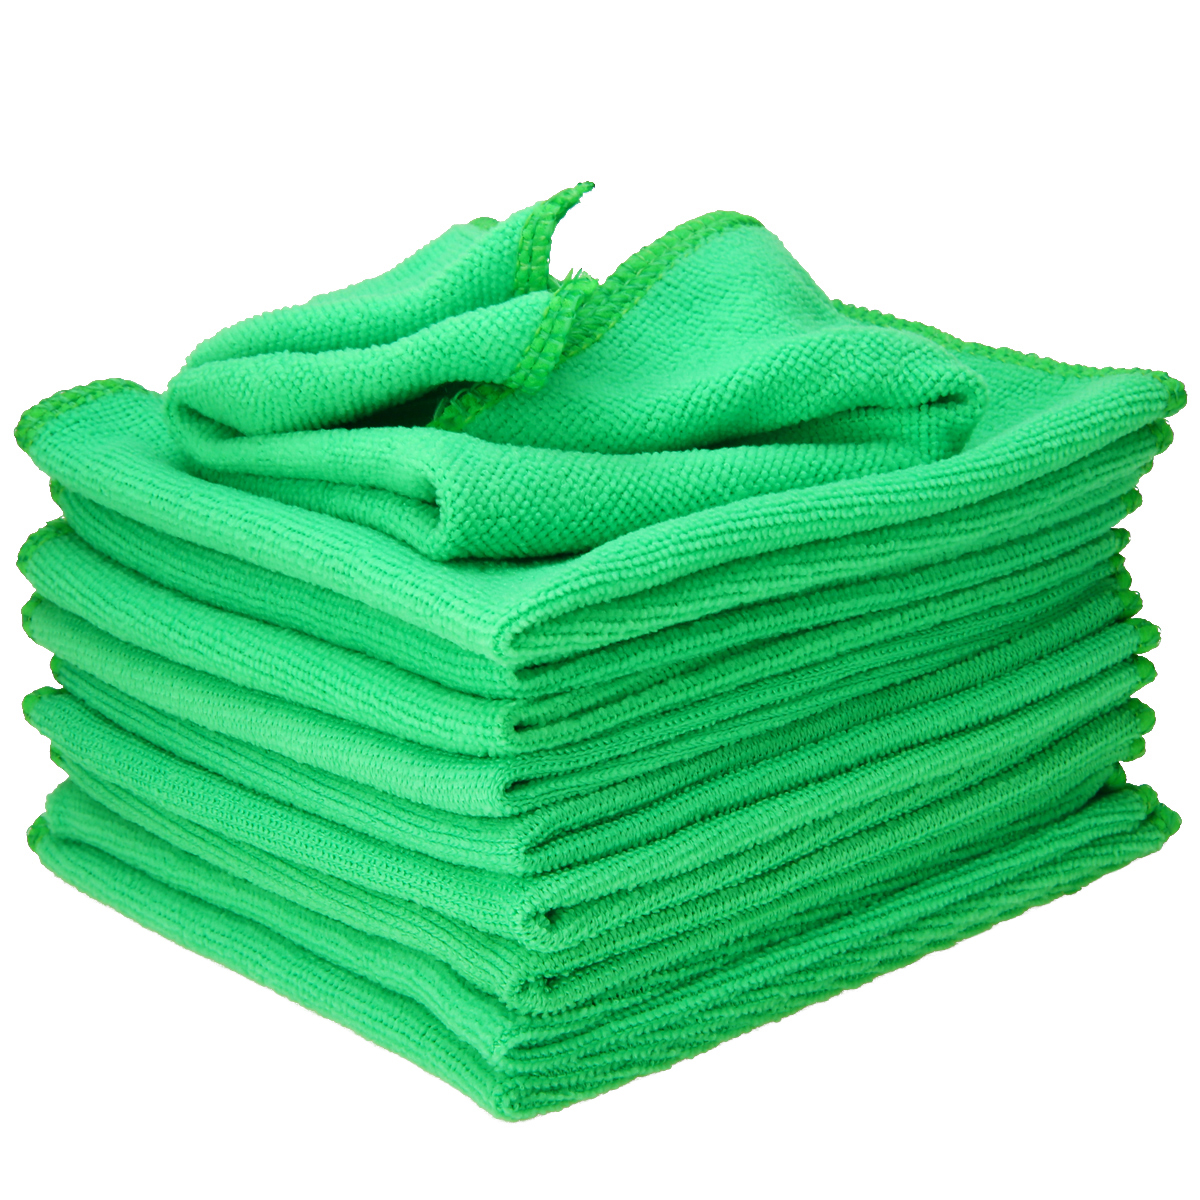 Image 4 - Mayitr 1Set 10X Green Microfiber Cleaning Auto Car Detailing Soft Microfiber Cloths Wash Towel Duster Home Clean 25*25CM-in Sponges, Cloths & Brushes from Automobiles & Motorcycles